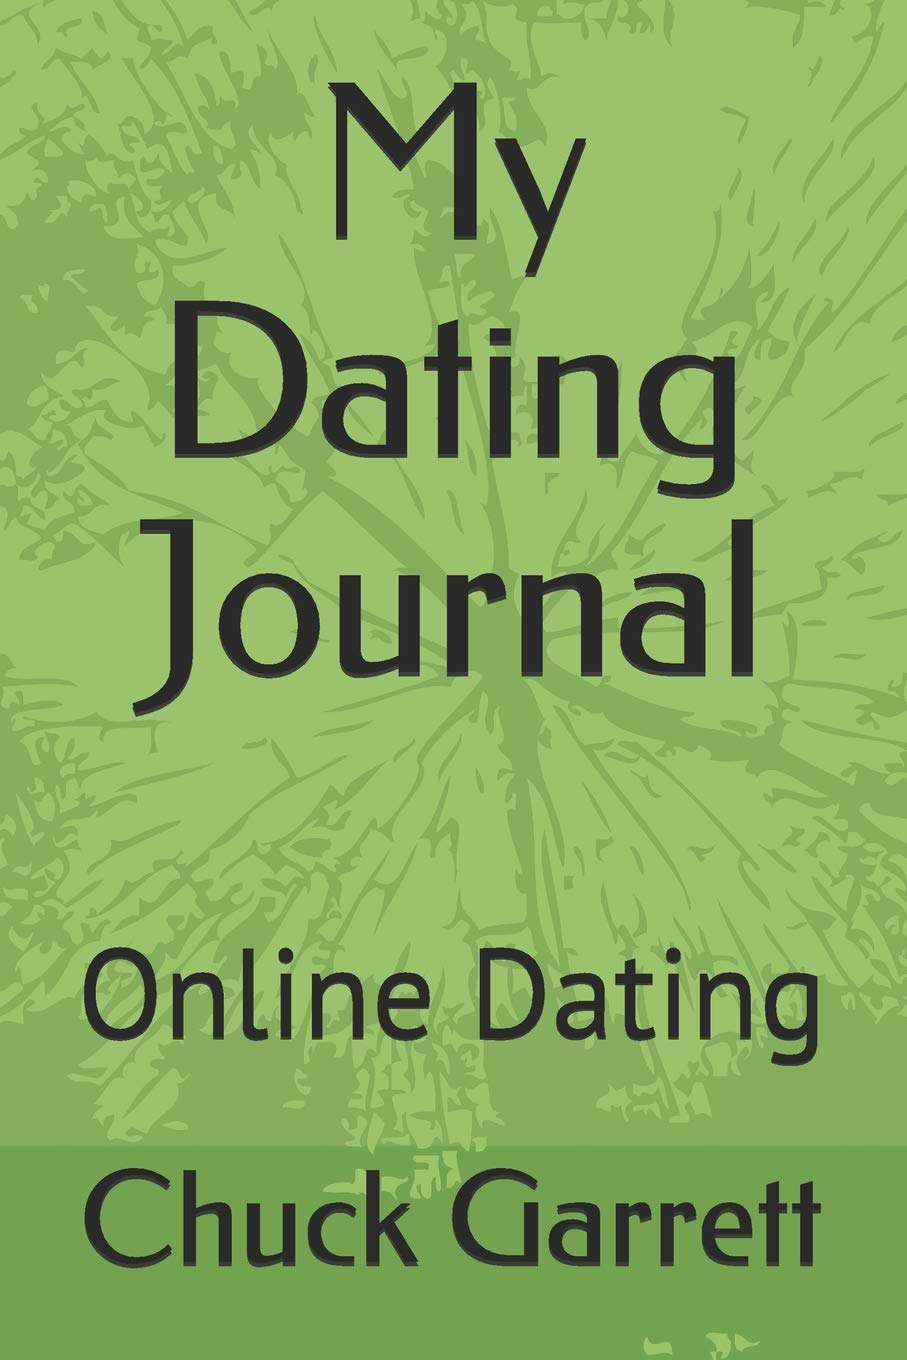 My Adventures in Online Dating: A Journal